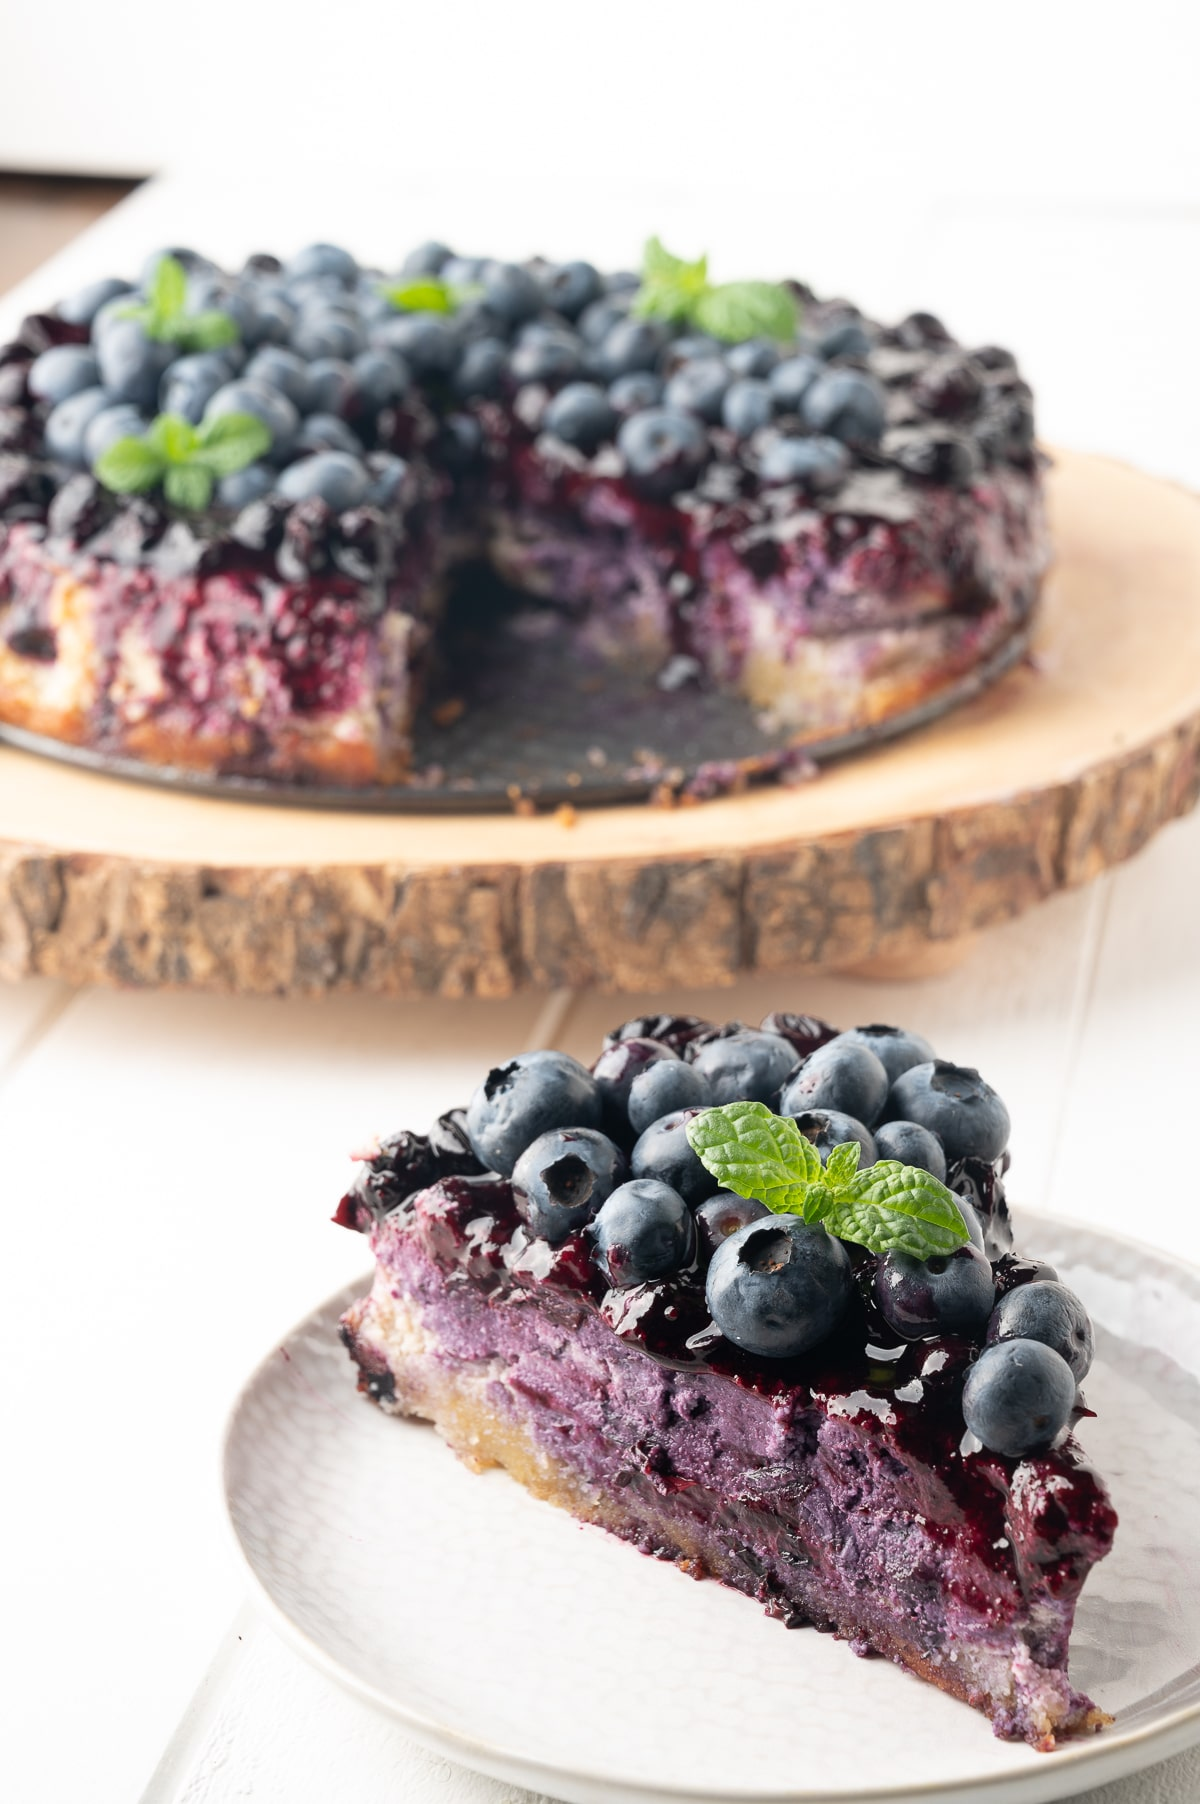 Bright violet colored blueberry cheesecake topped with fresh berries, blueberry drizzle and a sprig of fresh mint